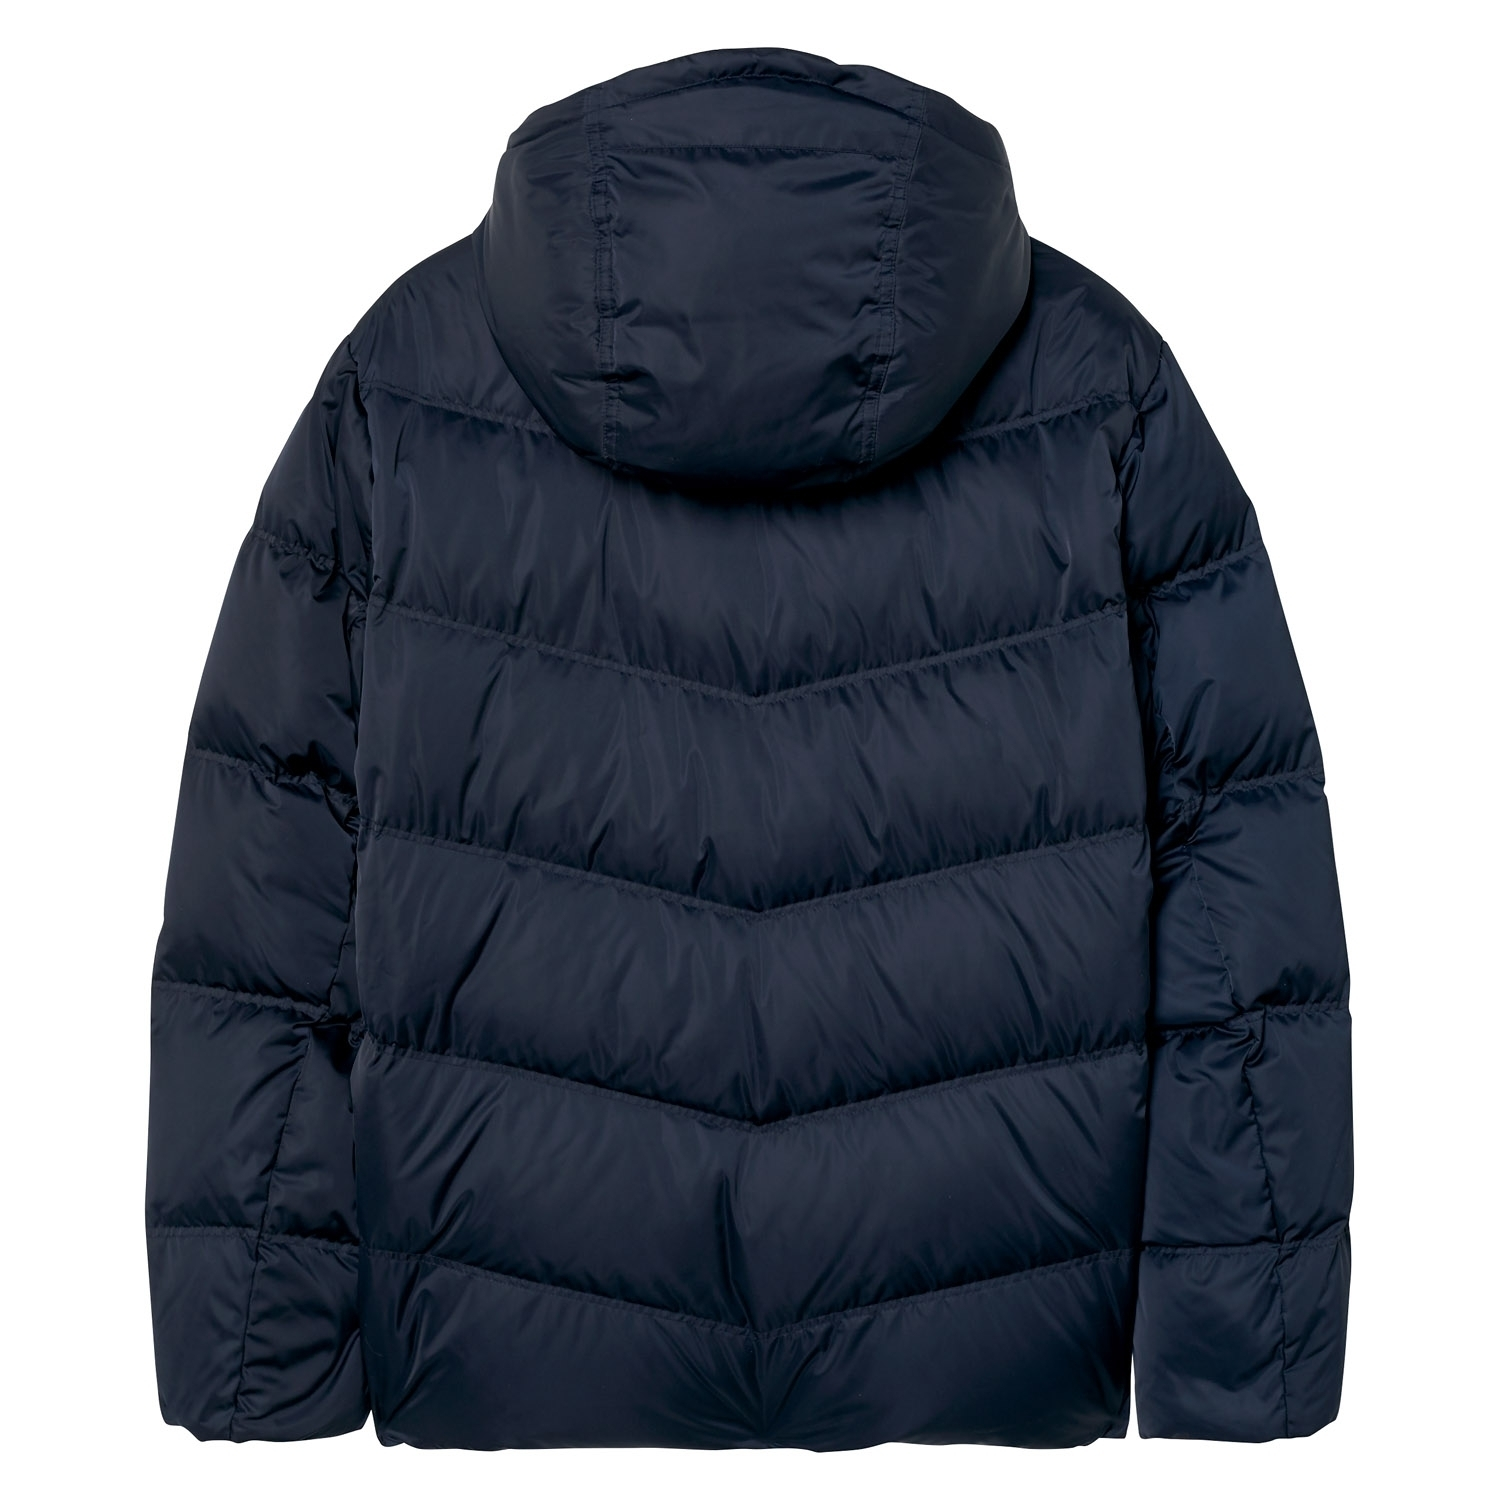 Gant Jacke Daunenjacke O2. THE ALTA DOWN JACKET 7001542 MARINE SH18-GD1